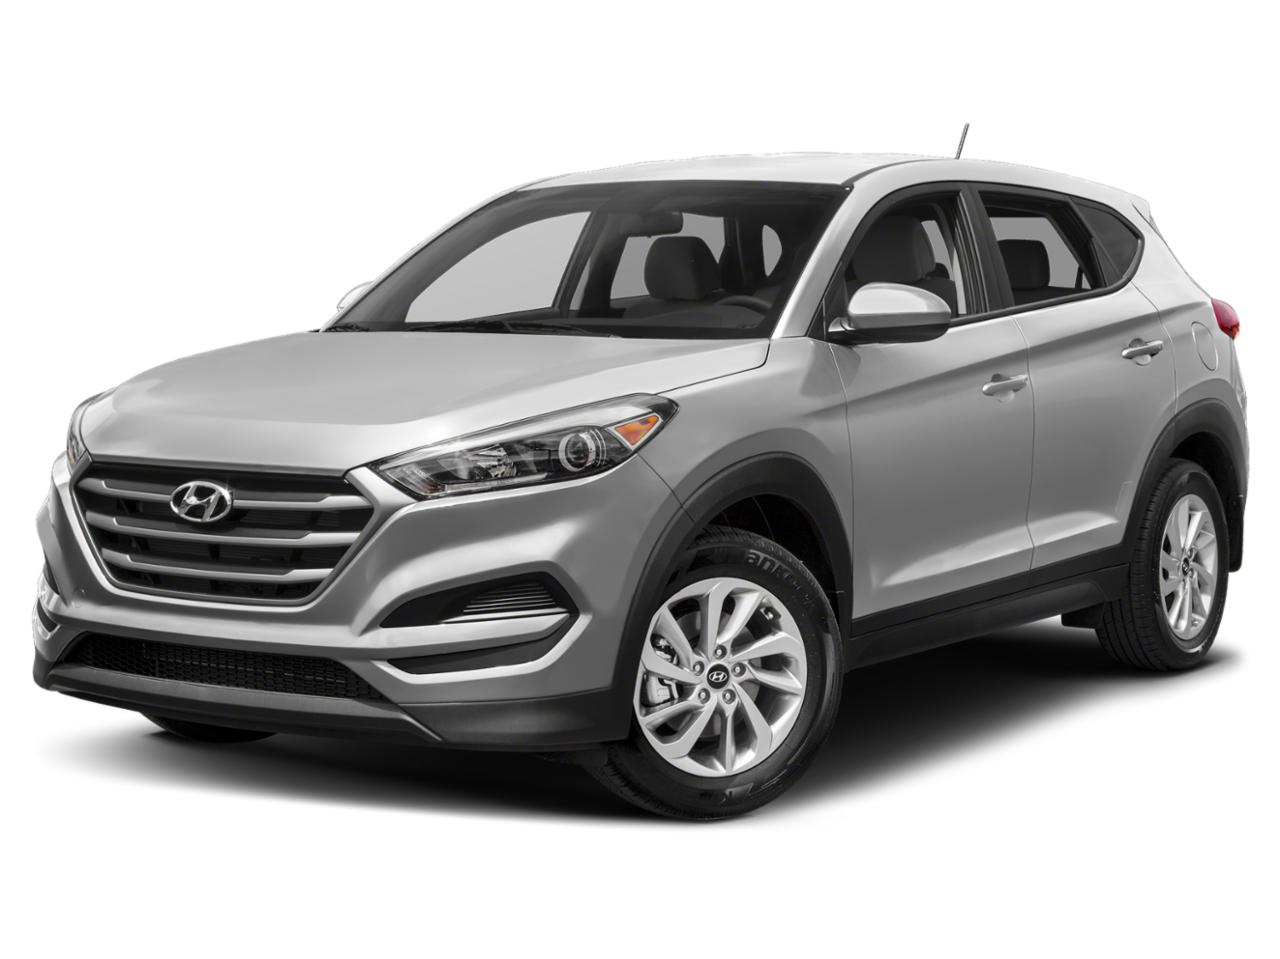 2018 Hyundai Tucson Vehicle Photo in San Antonio, TX 78254